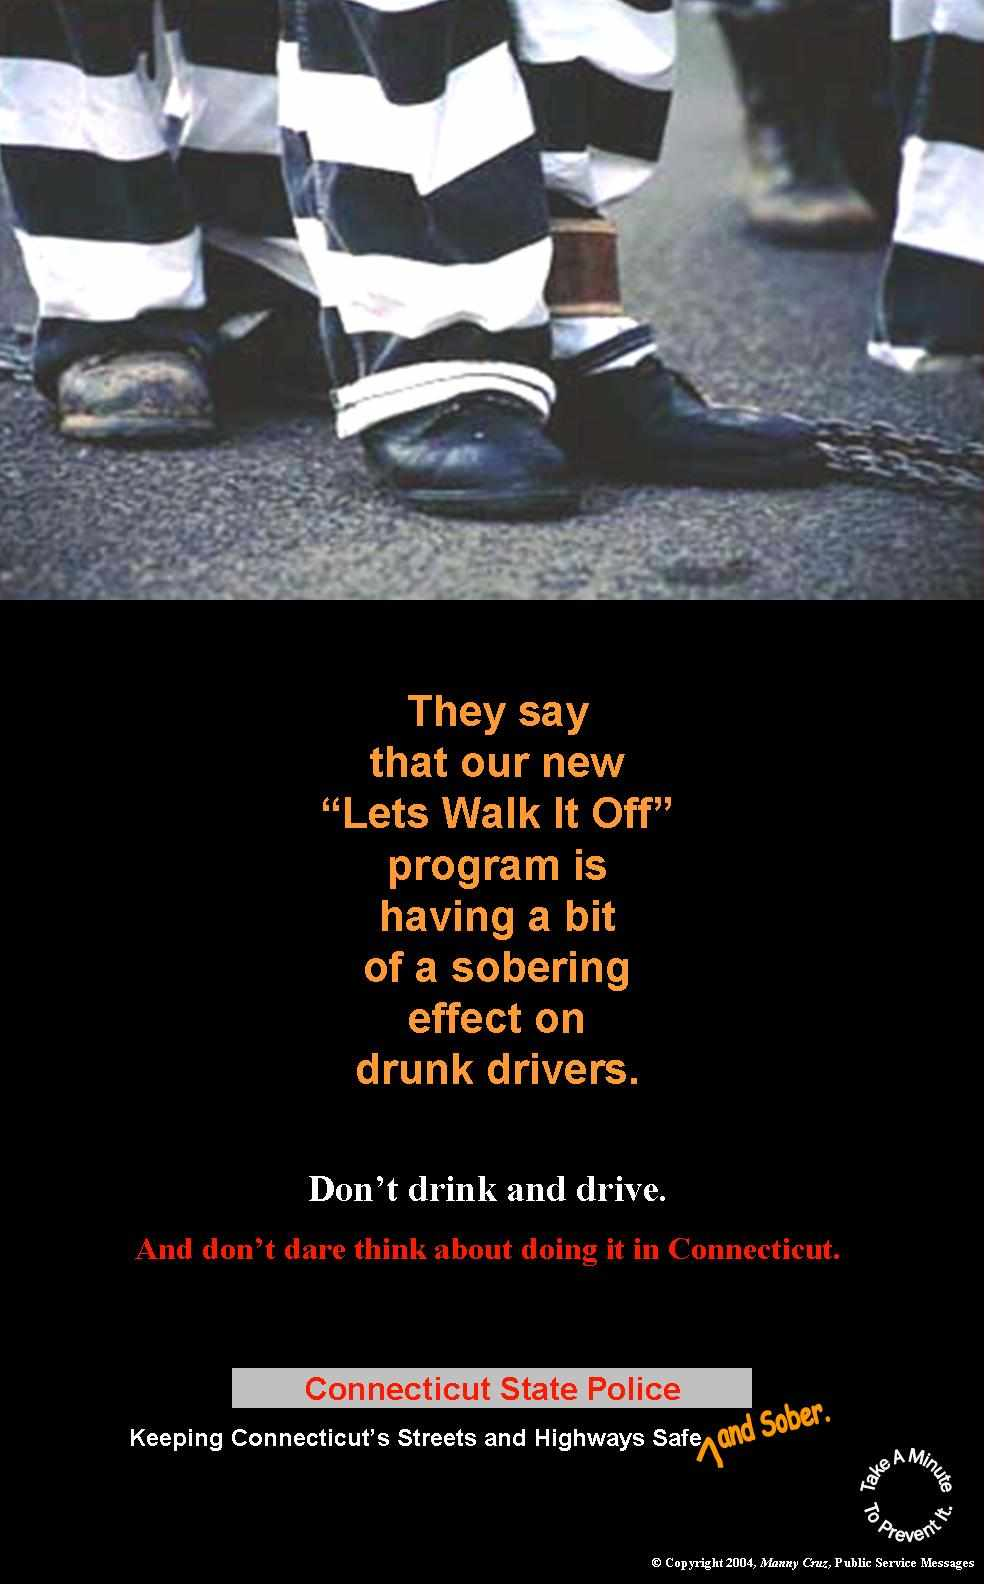 Drunk driving awareness/prevention ad ideas